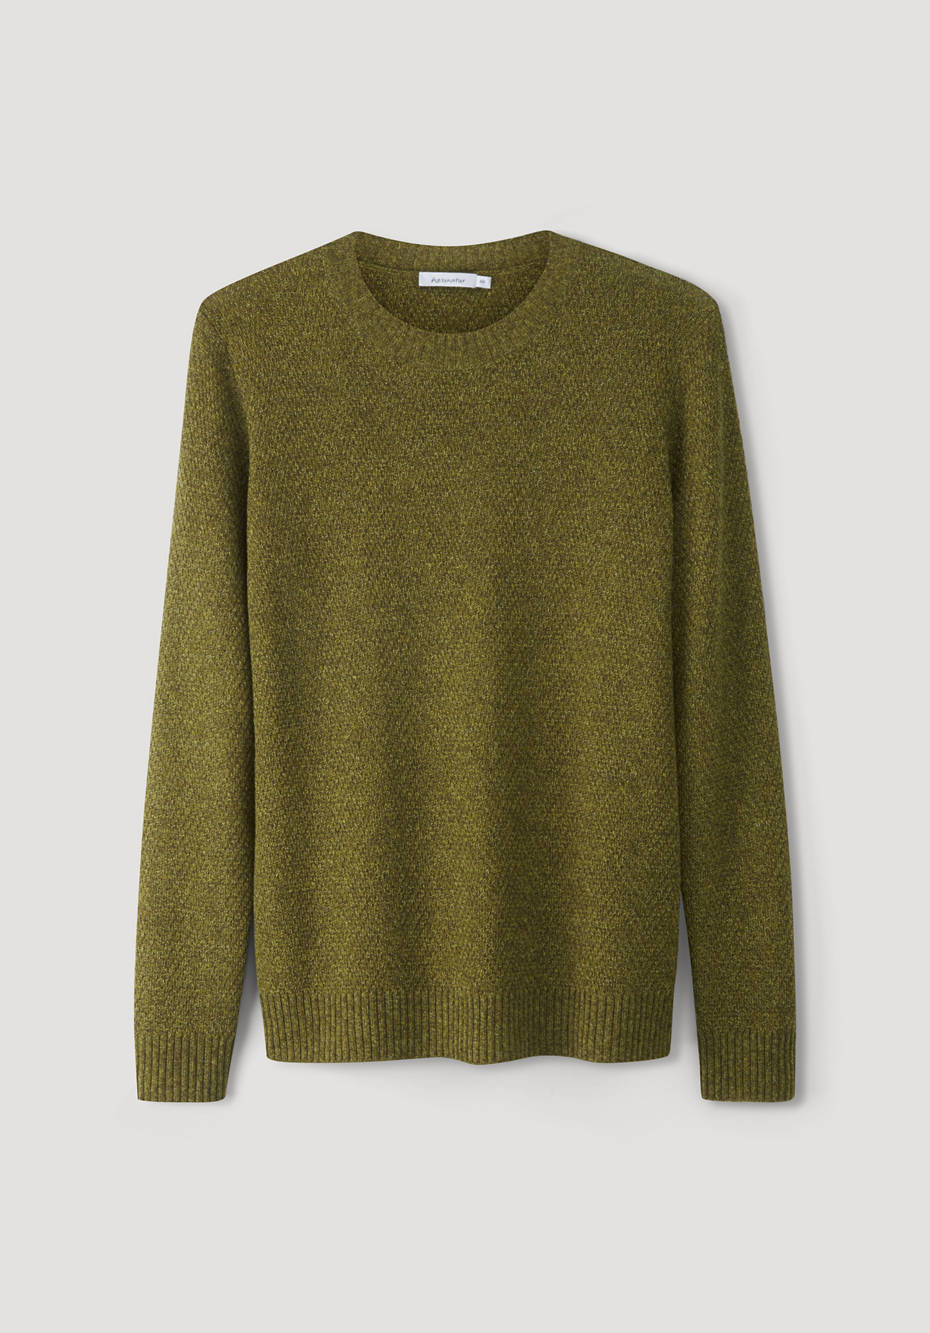 Virgin wool sweater with yak and cotton